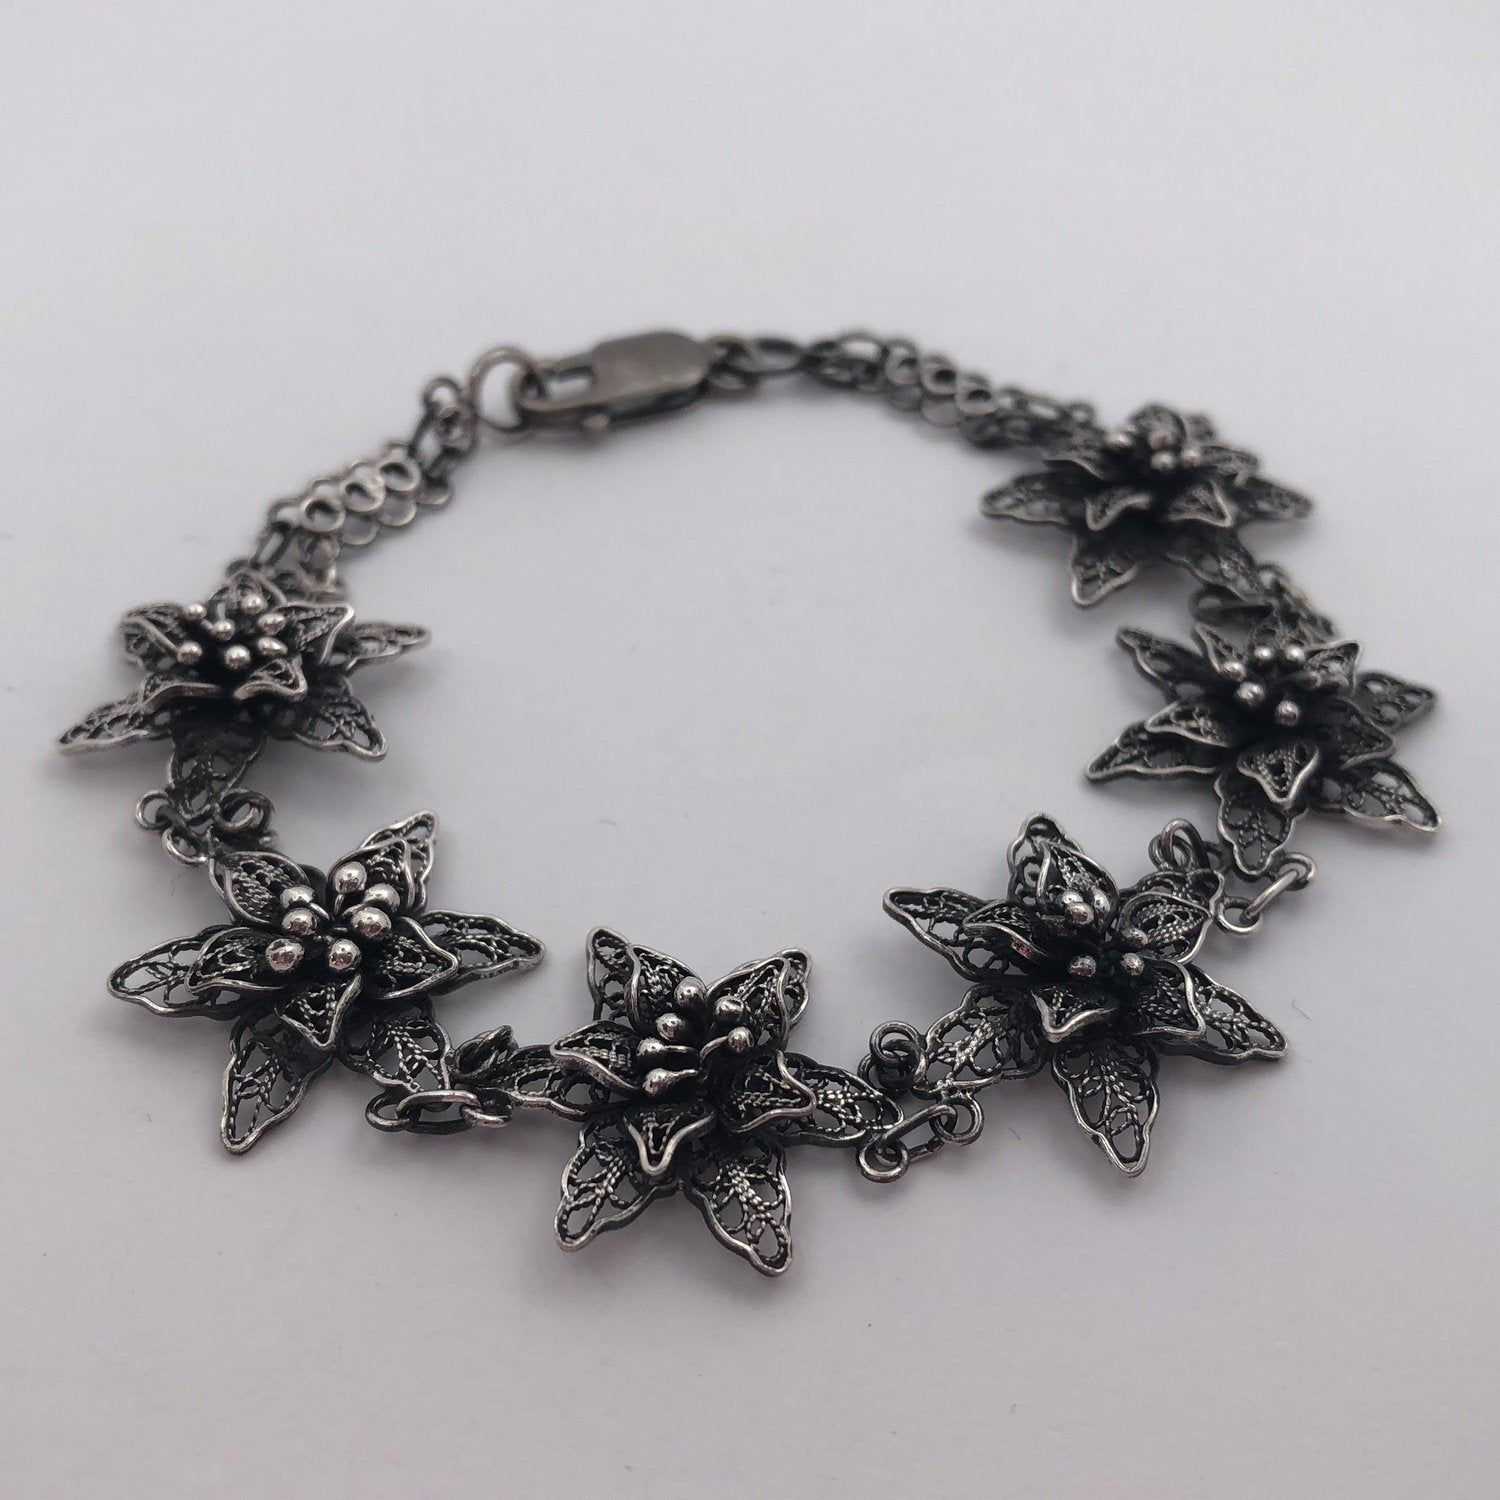 """""""Filigree Bracelet Flor de Amor - Silver Bracelet - Flower Bracelet - Filigree Jewelry - Silver Jewelry - Flower Jewelry - Gift for Mom Filigree - delicate jewellery technique made from silver or golden threads \""""embroidering\"""" kind of metalwork lace that is specific to Spain, especially an Andalusian town Cordoba, where they call it a cordobese filigree. This craftsmanship has been passed from generation to generation, nonetheless nowadays there are very few craftsmen left who know to perform s"""